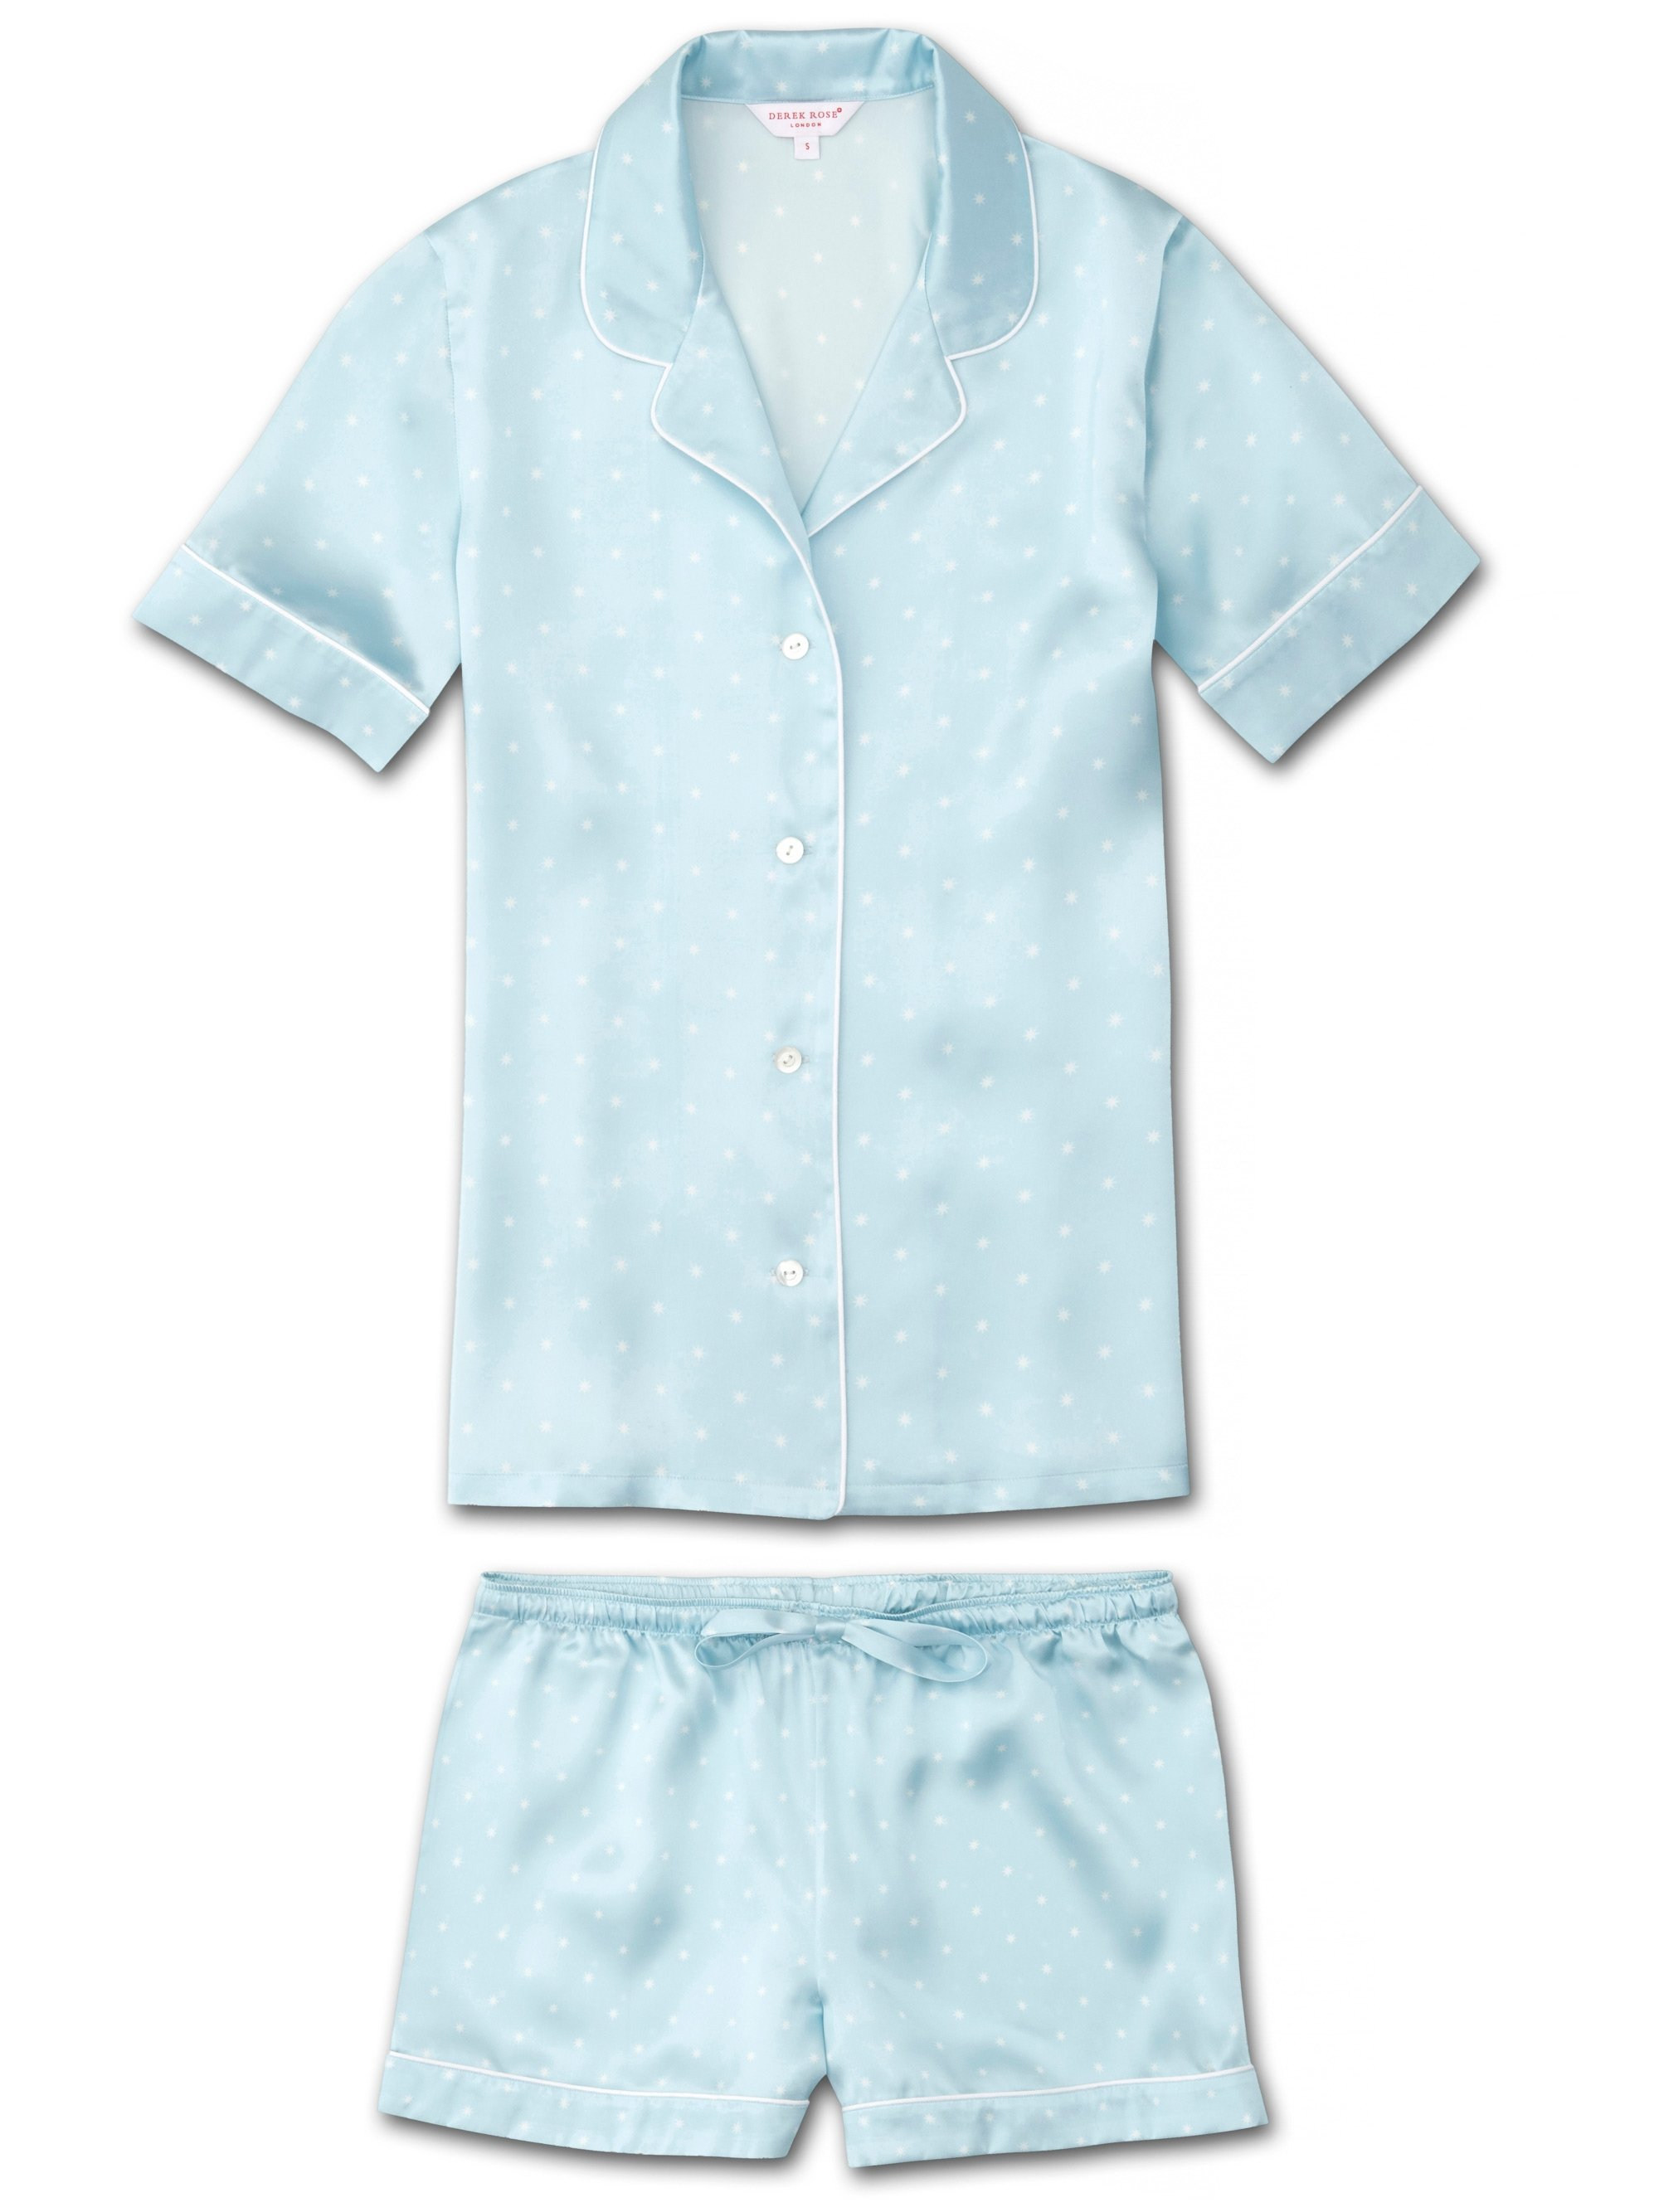 Women's Shortie Pyjamas Brindisi 54 Pure Silk Satin Blue